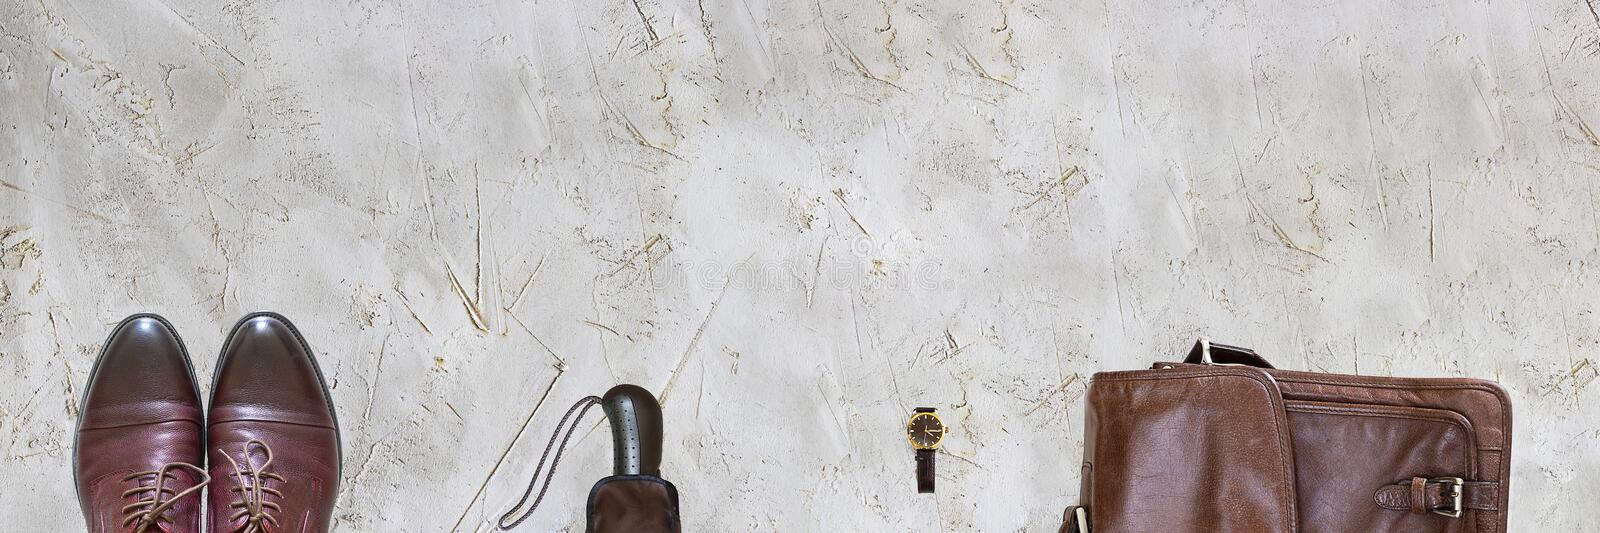 Brown man Accessories classic shoes, umbrella, watches, leather bag on grey textured cement rough surface. Long horizontal banner stock photography